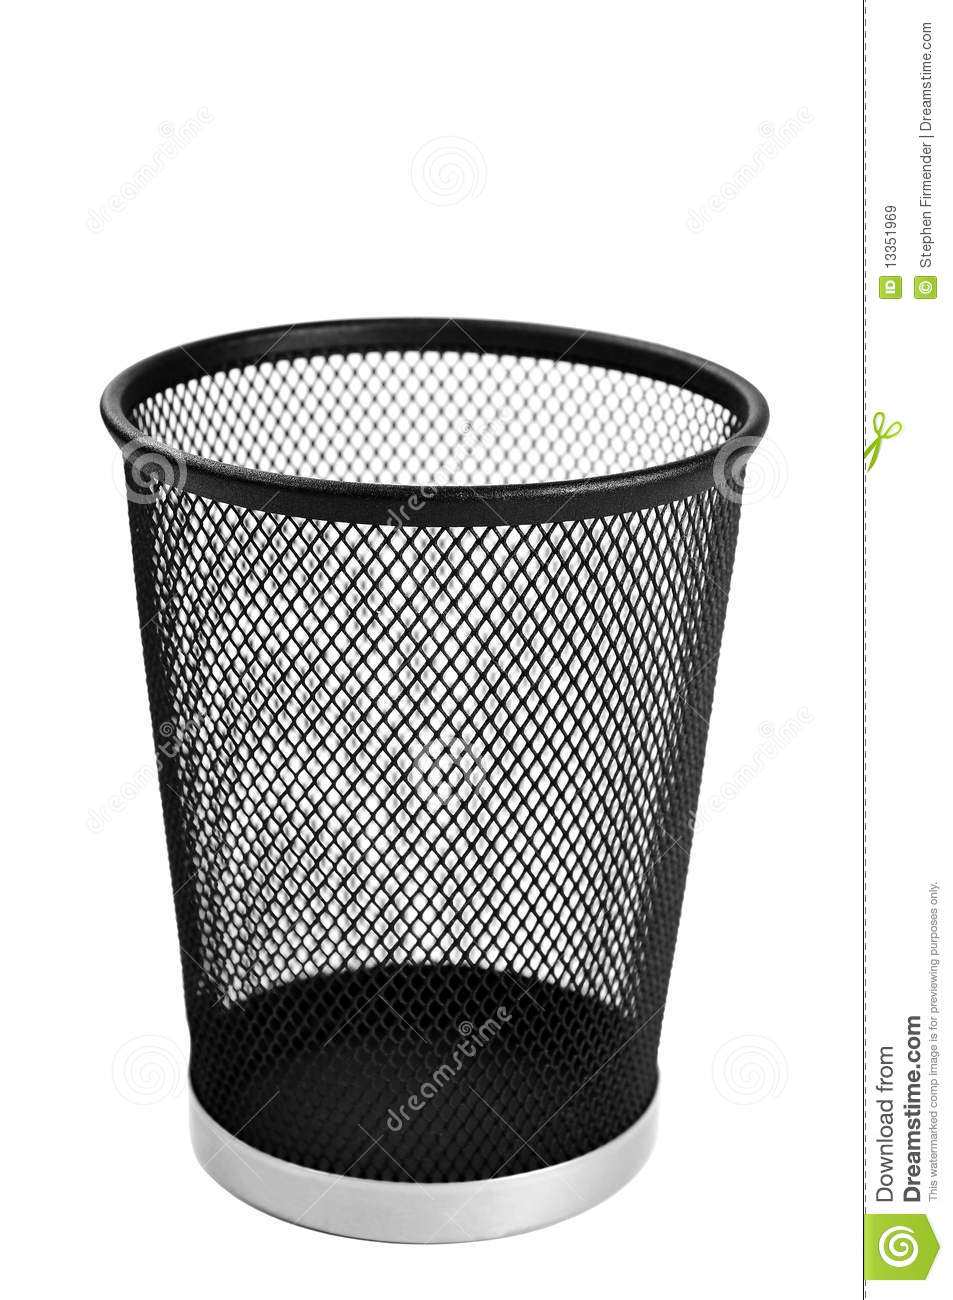 Waste Paper Basket Waste Paper Basket Royalty Free Stock Images  Image 13351969